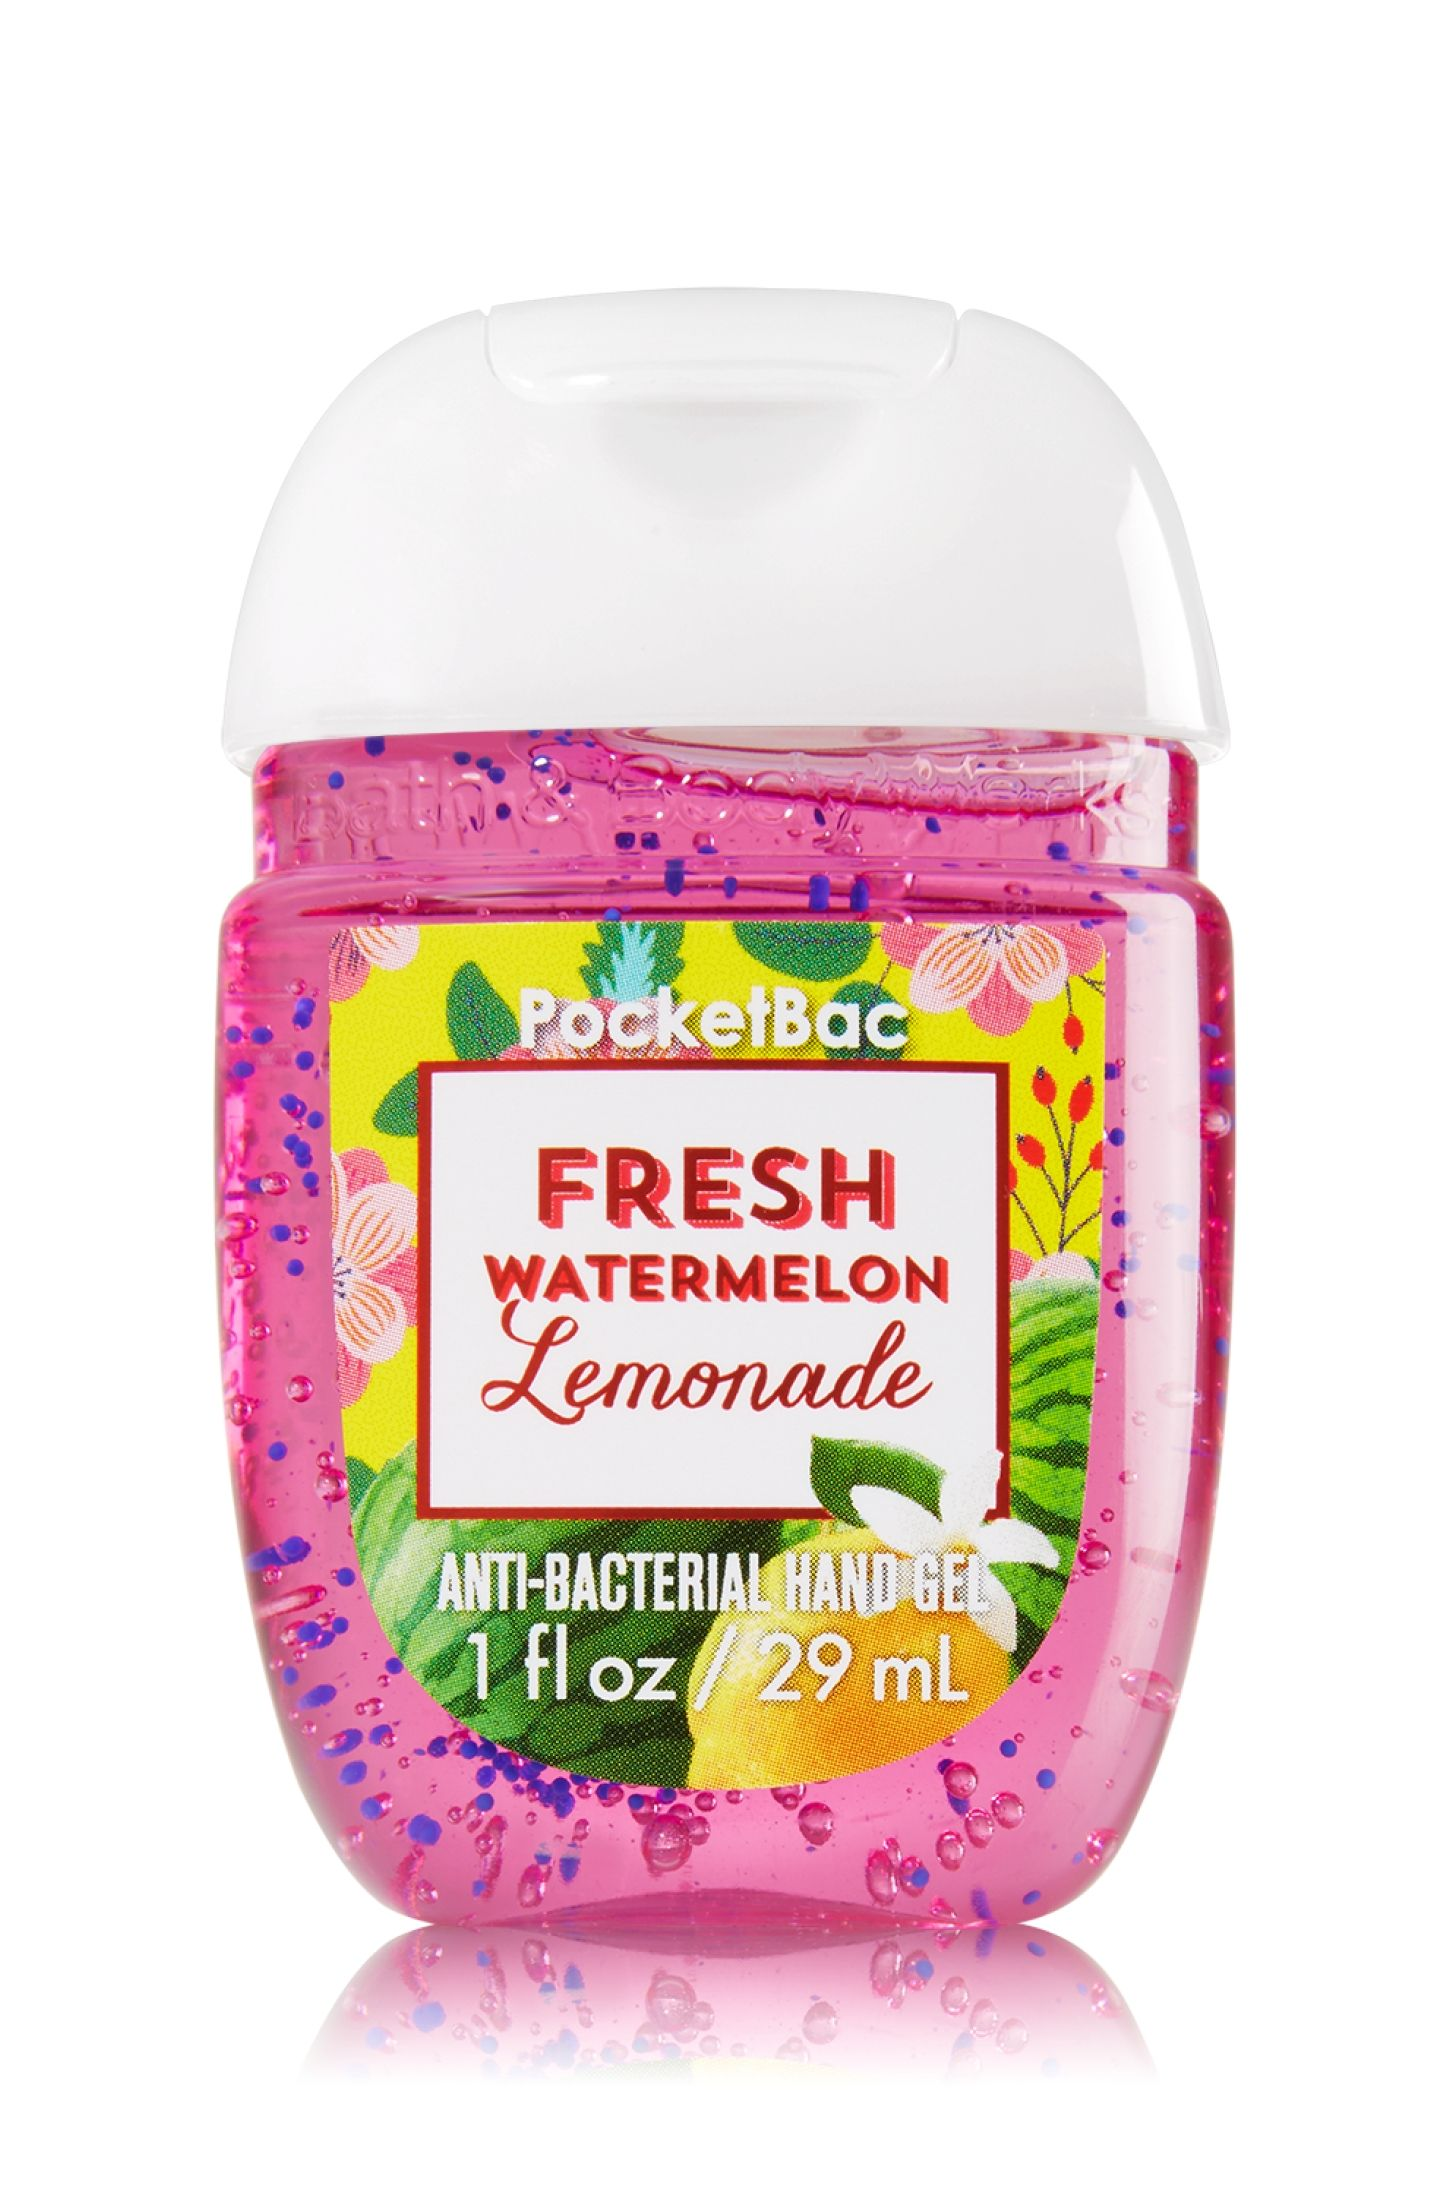 Party Favors Fresh Watermelon Lemonade Pocketbac Sanitizing Hand